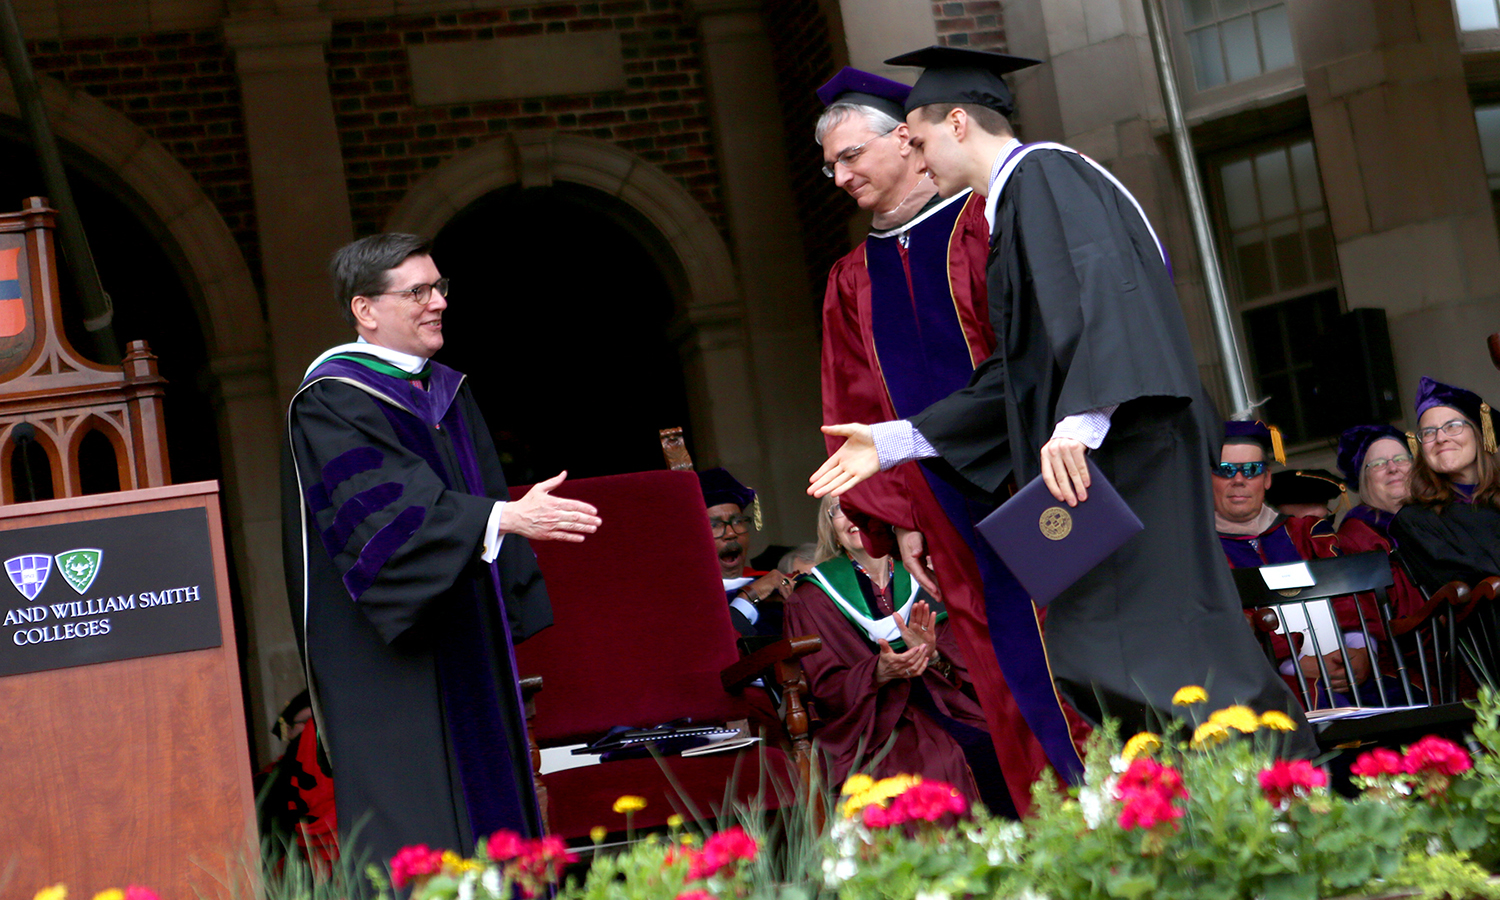 Joined by his father Craig Stine '81 P'17, Jack Stine '17 (right) accepts his diploma from President Mark D. Gearan during Commencement.